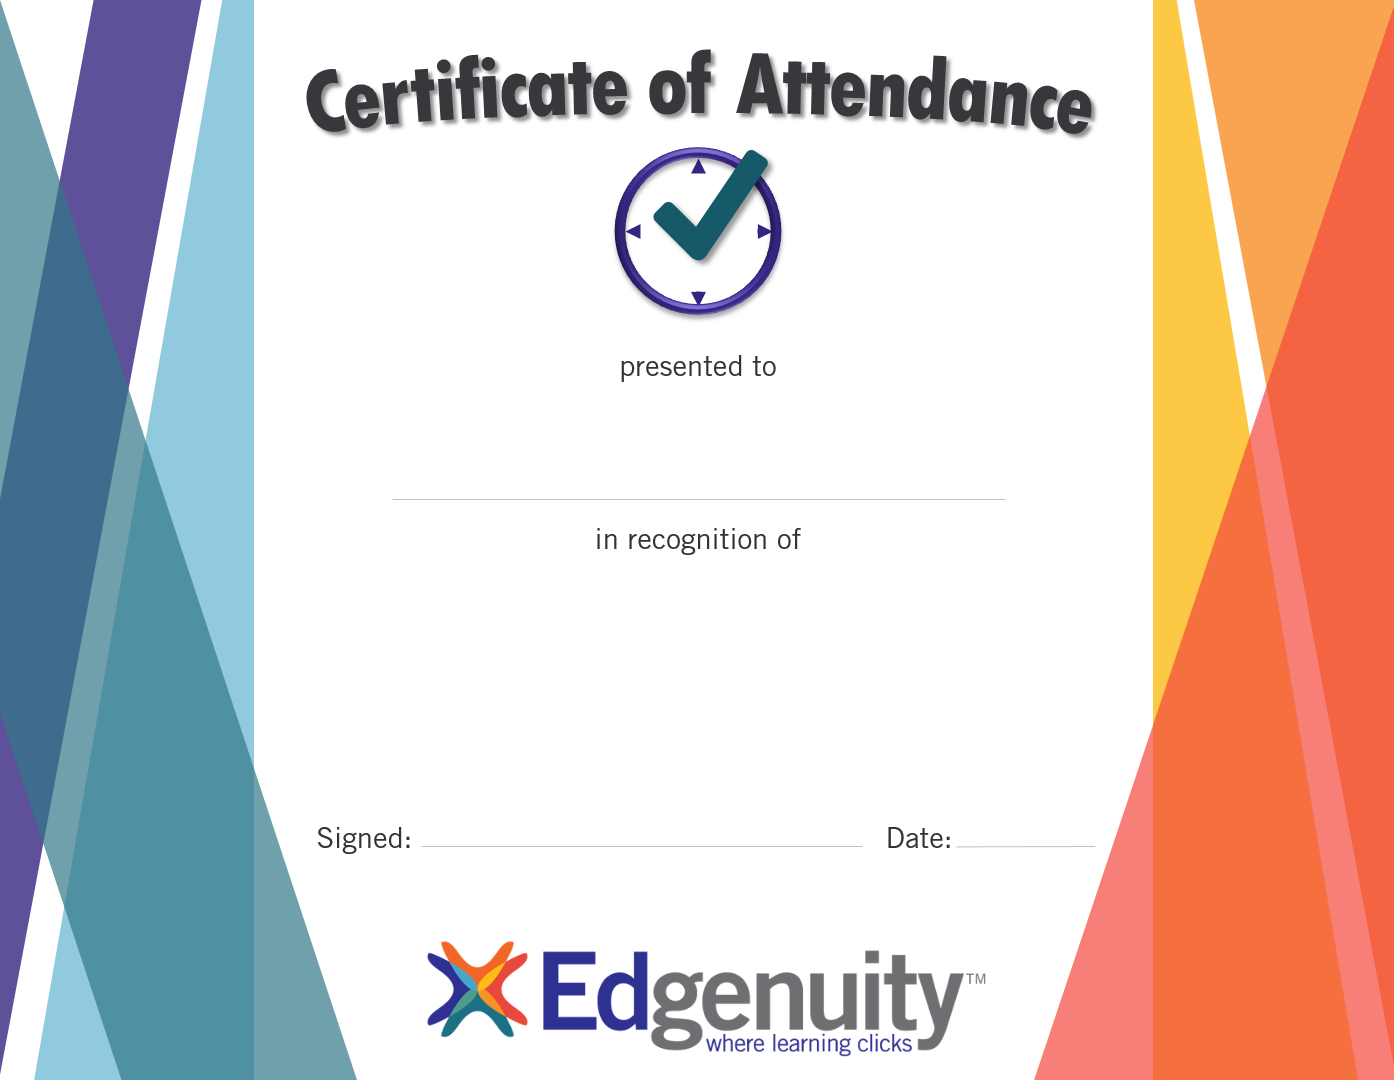 Certificate_of_Attendance_v2.png